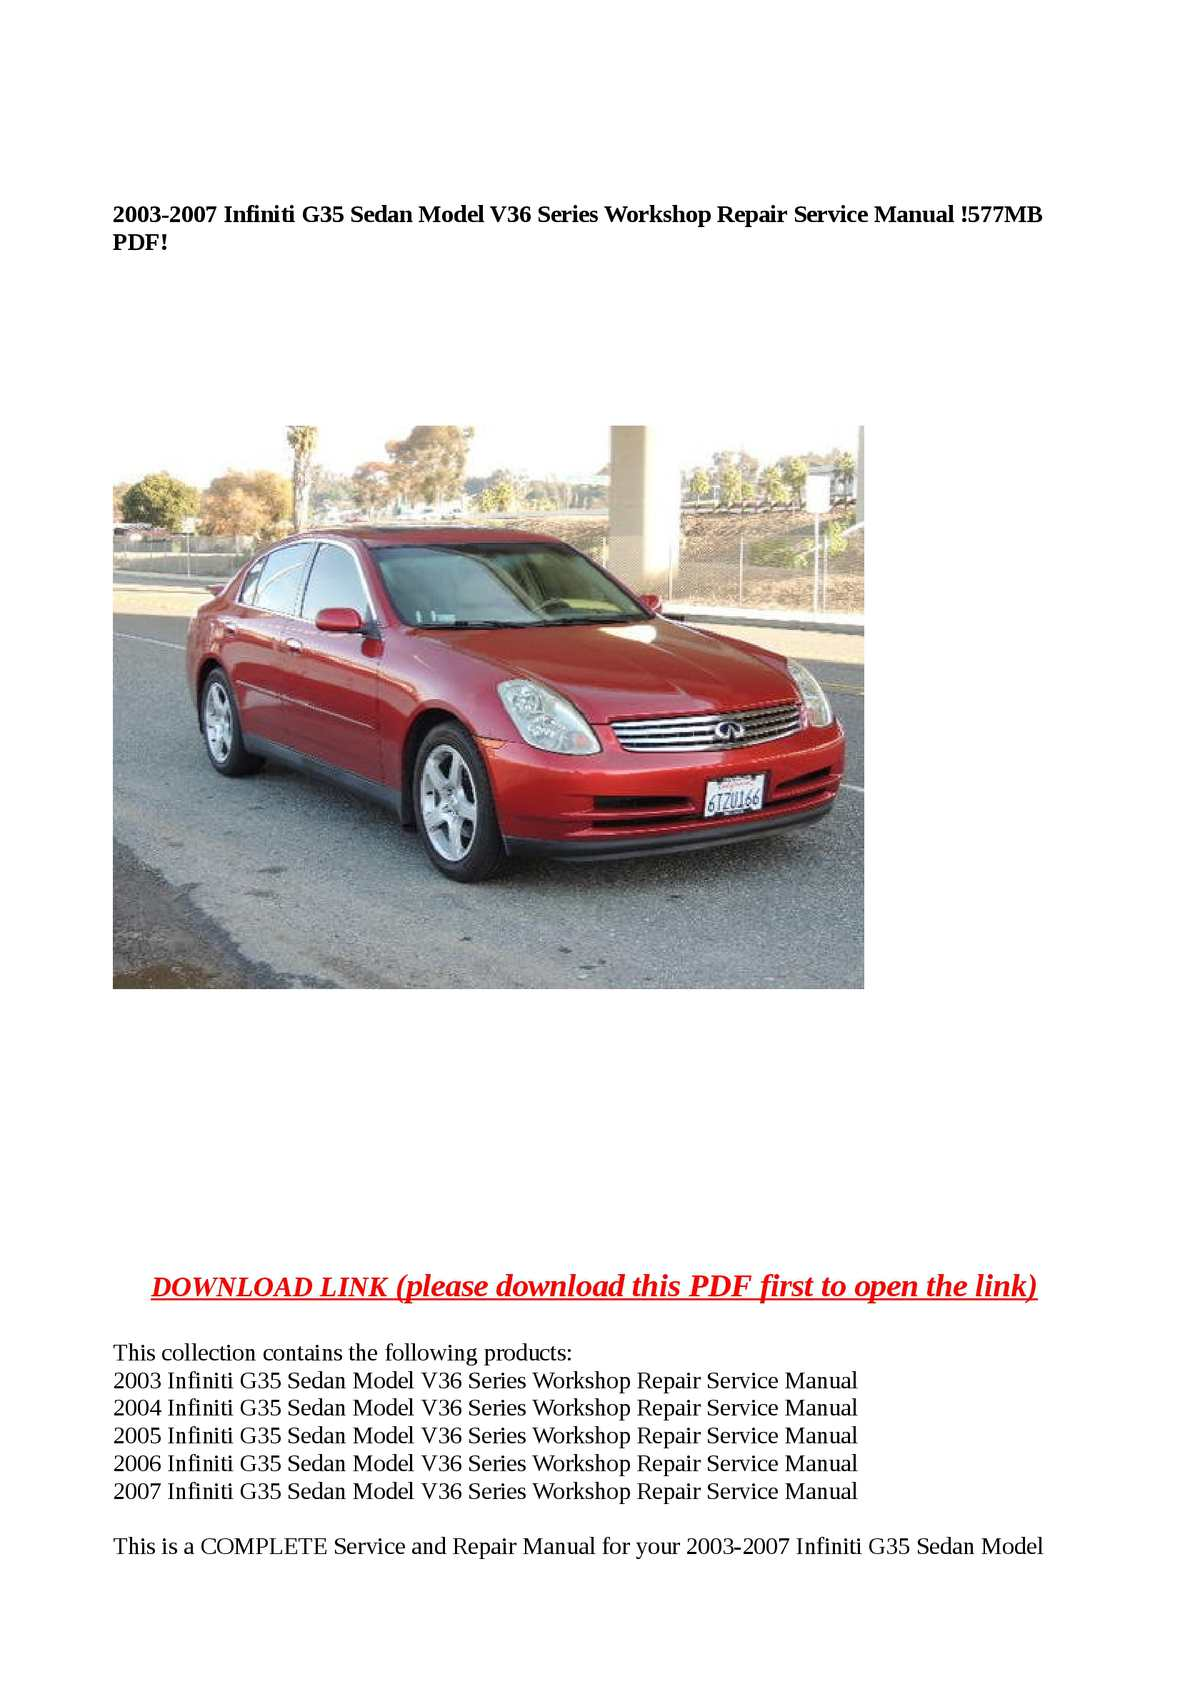 Calaméo - 2003-2007 Infiniti G35 Sedan Model V36 Series Workshop Repair  Service Manual !577MB PDF!